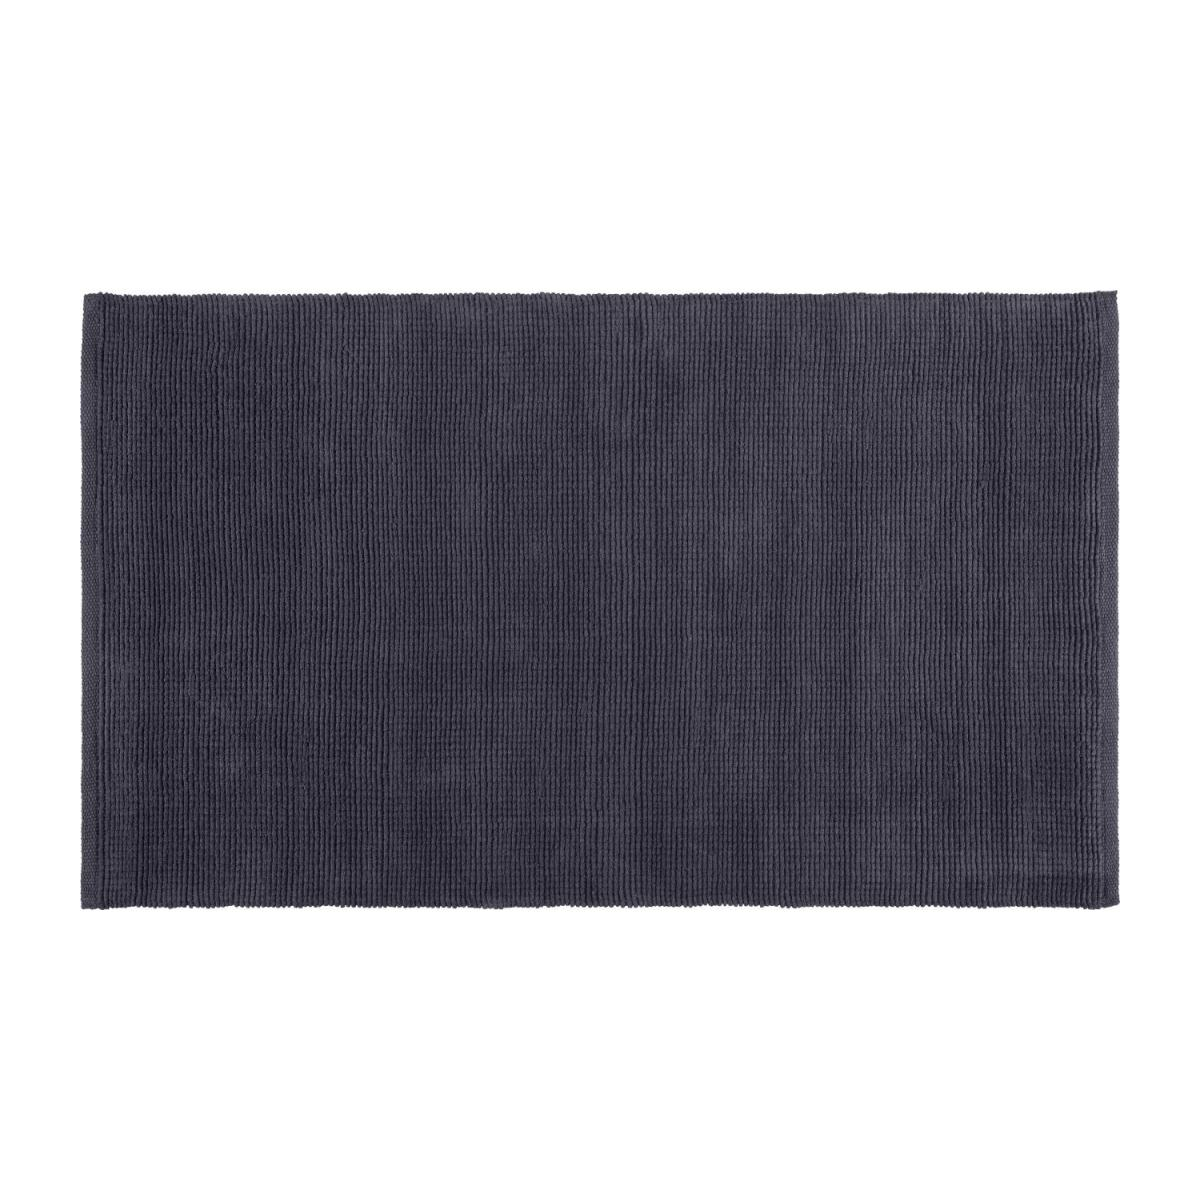 Small textured cotton rug n°1